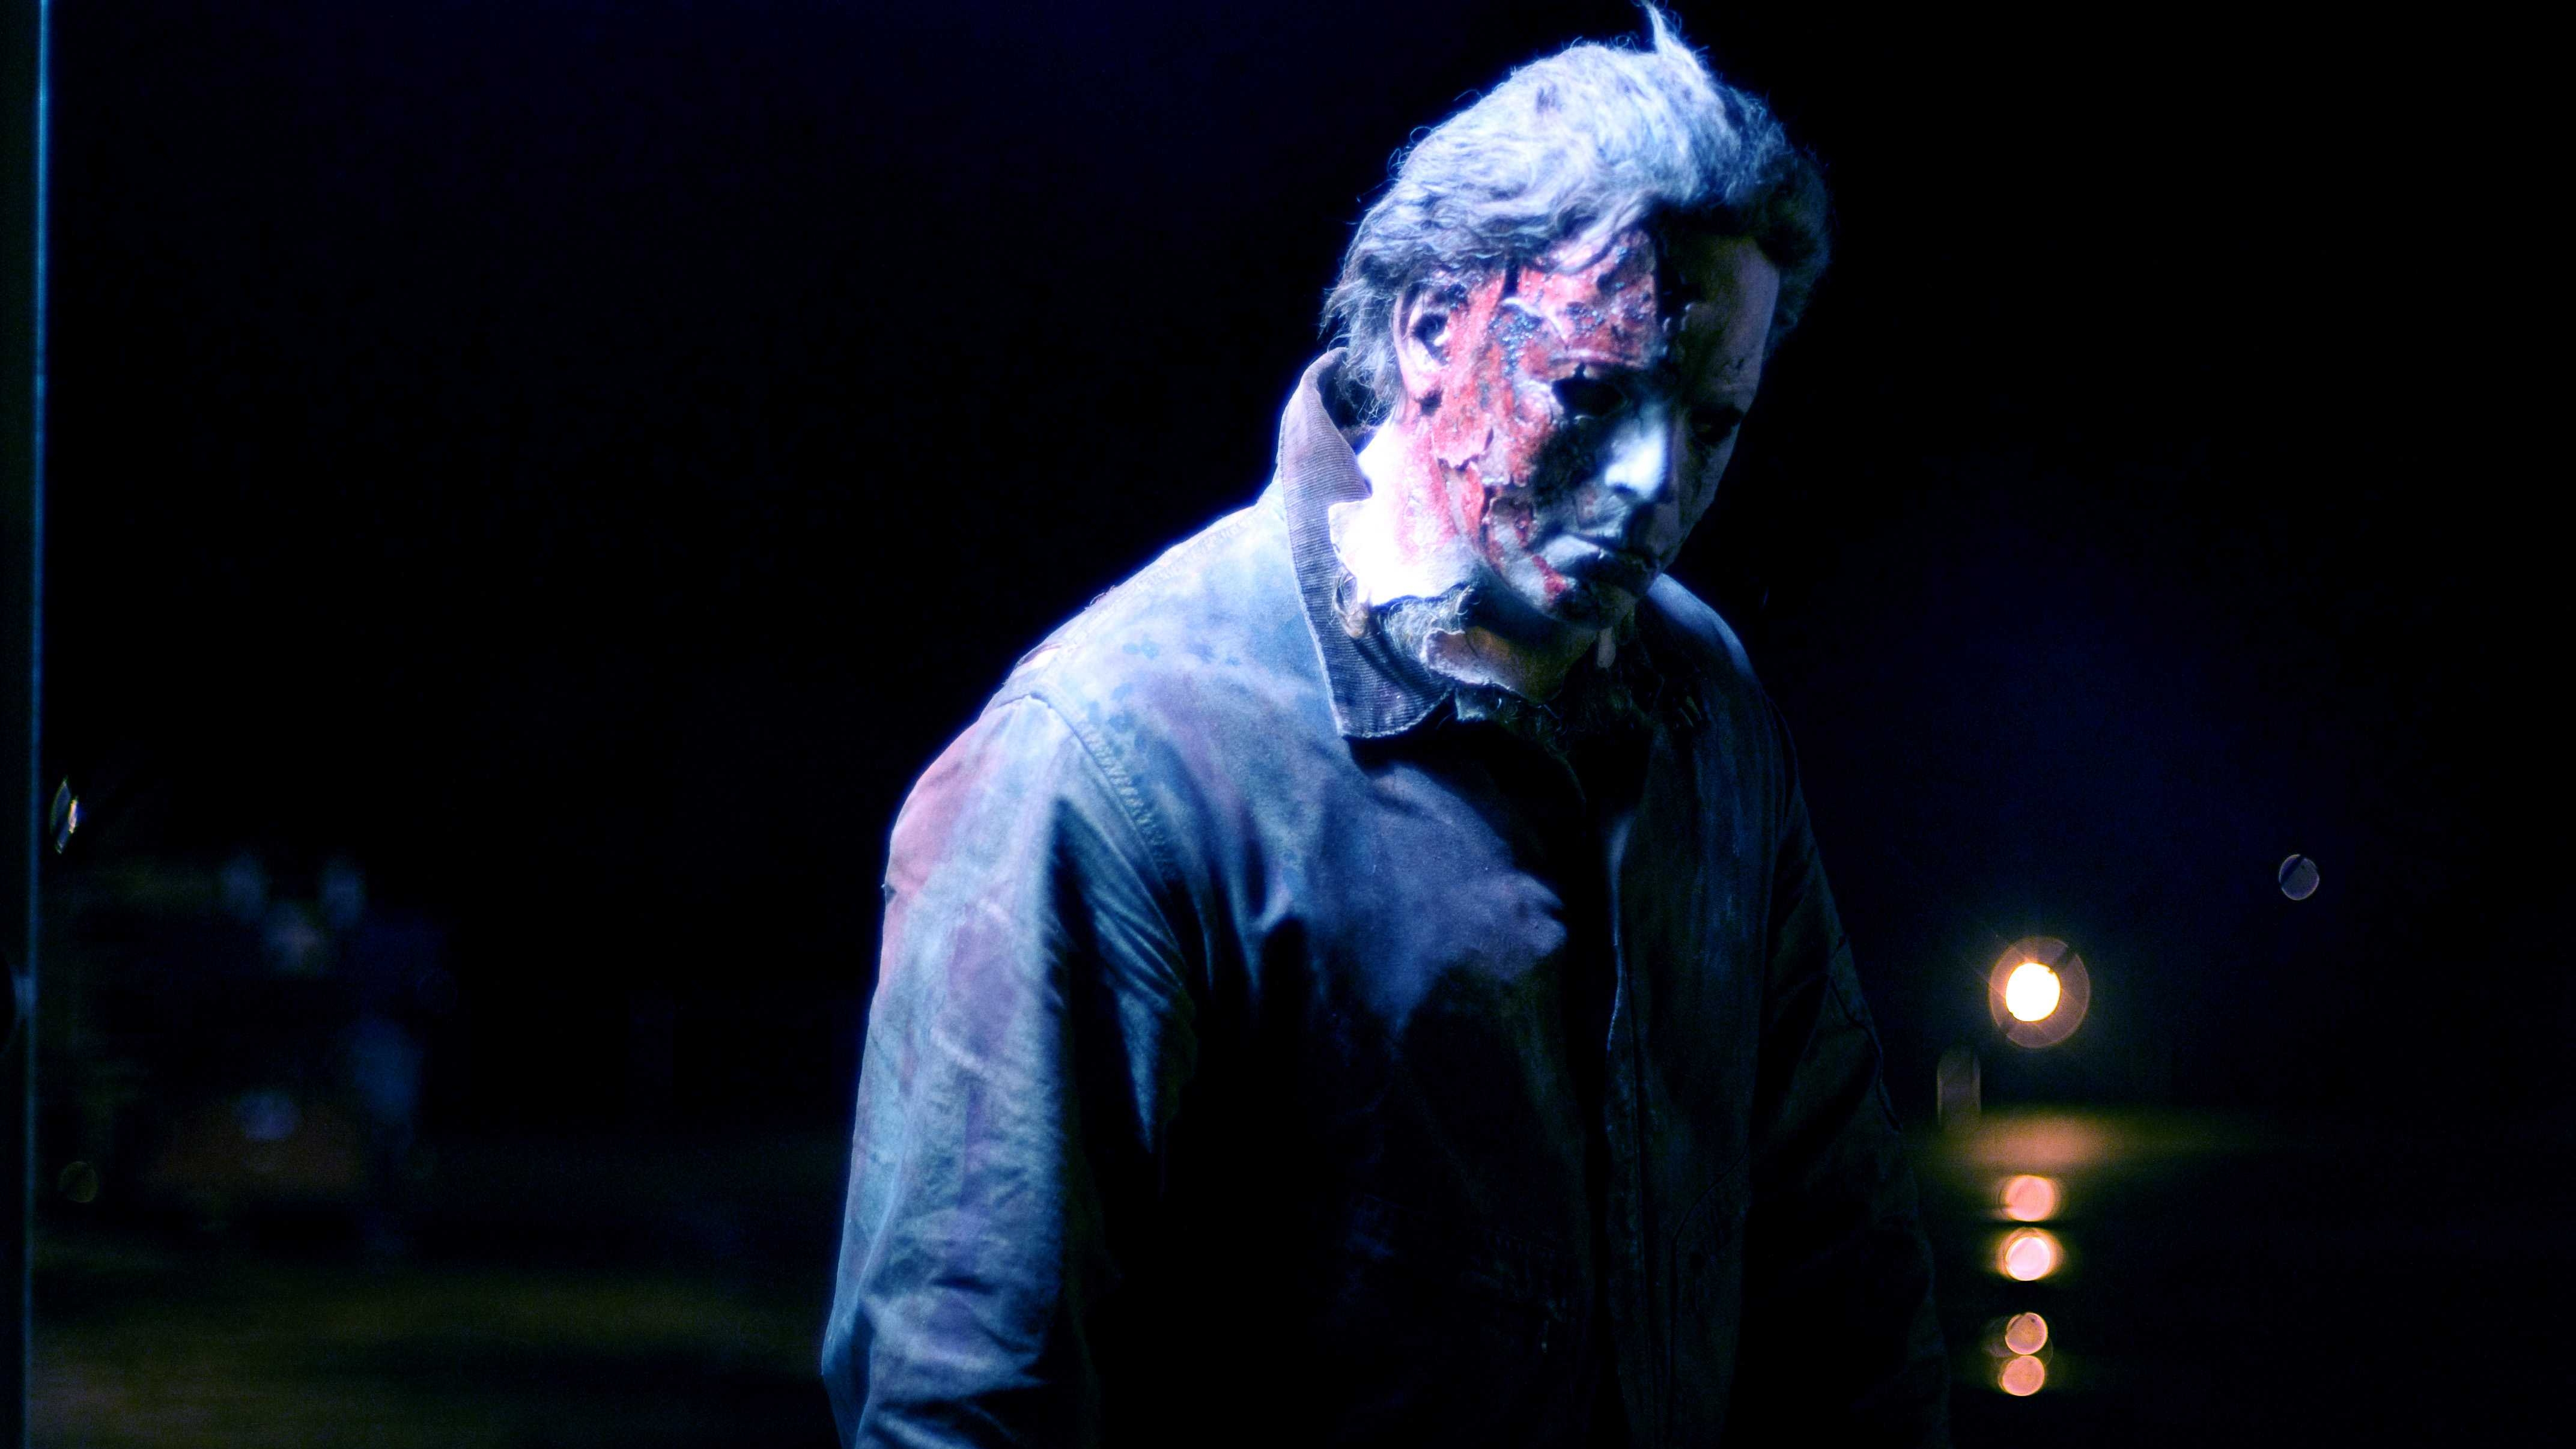 21 Michael Myers Hd Wallpapers Background Images Wallpaper Abyss